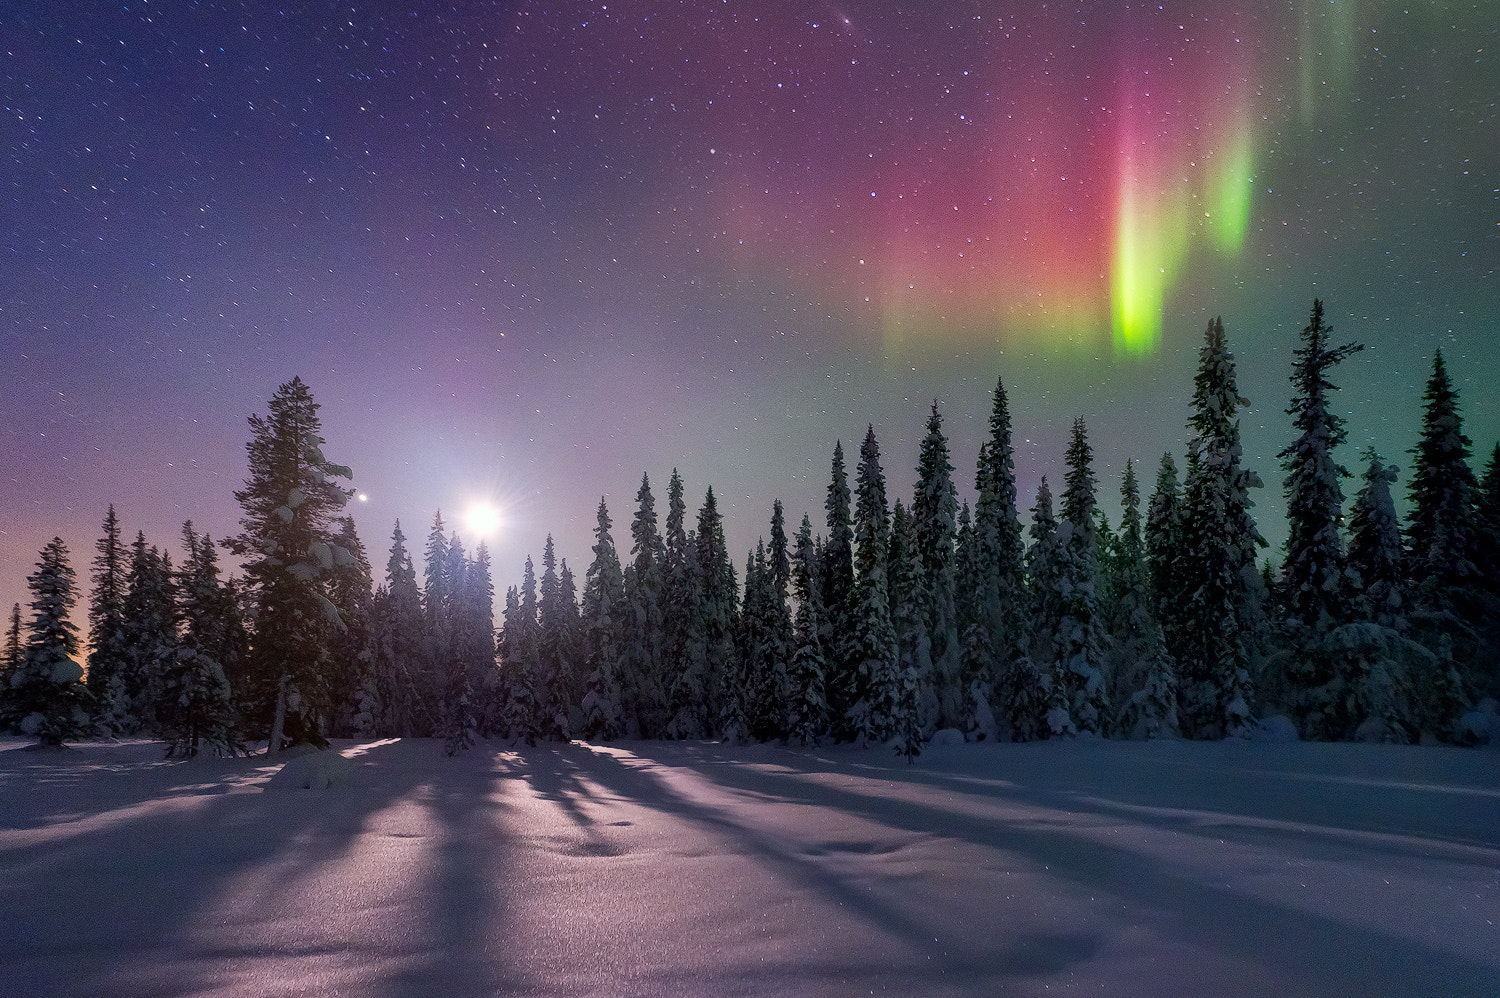 Photograph Bright Side of the Moon by Miles Morgan on 500px